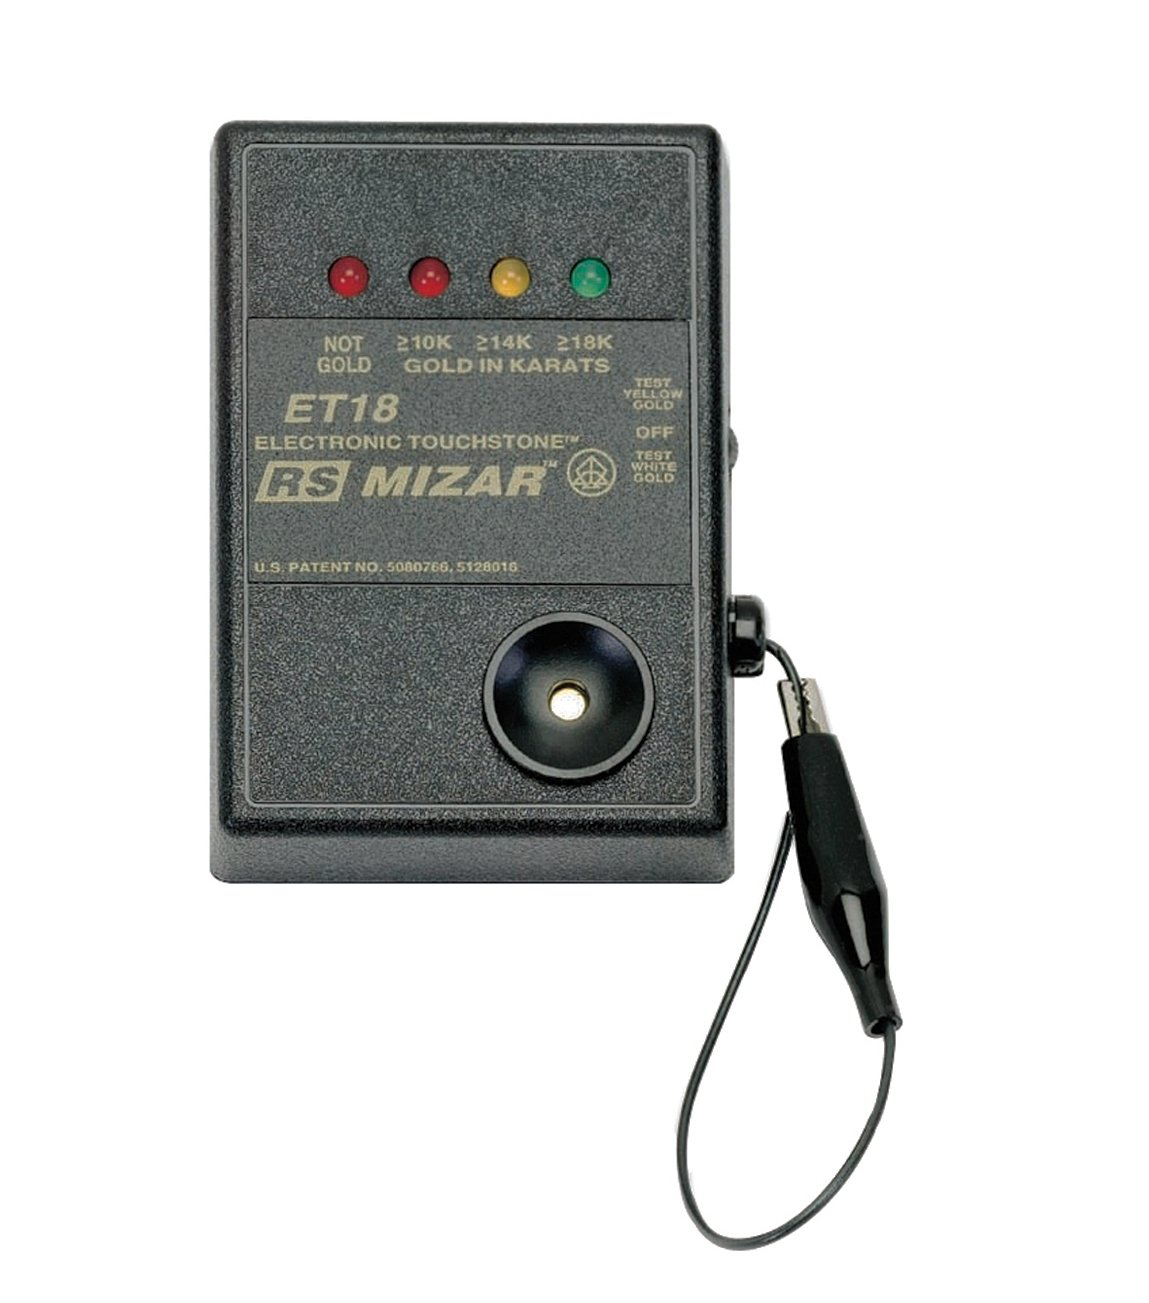 ET-18 Mizar Gold Tester Battery Operated Electronic Gold Karat Purity Value 10K 14K 18K Tester by PMC Supplies LLC (Image #1)